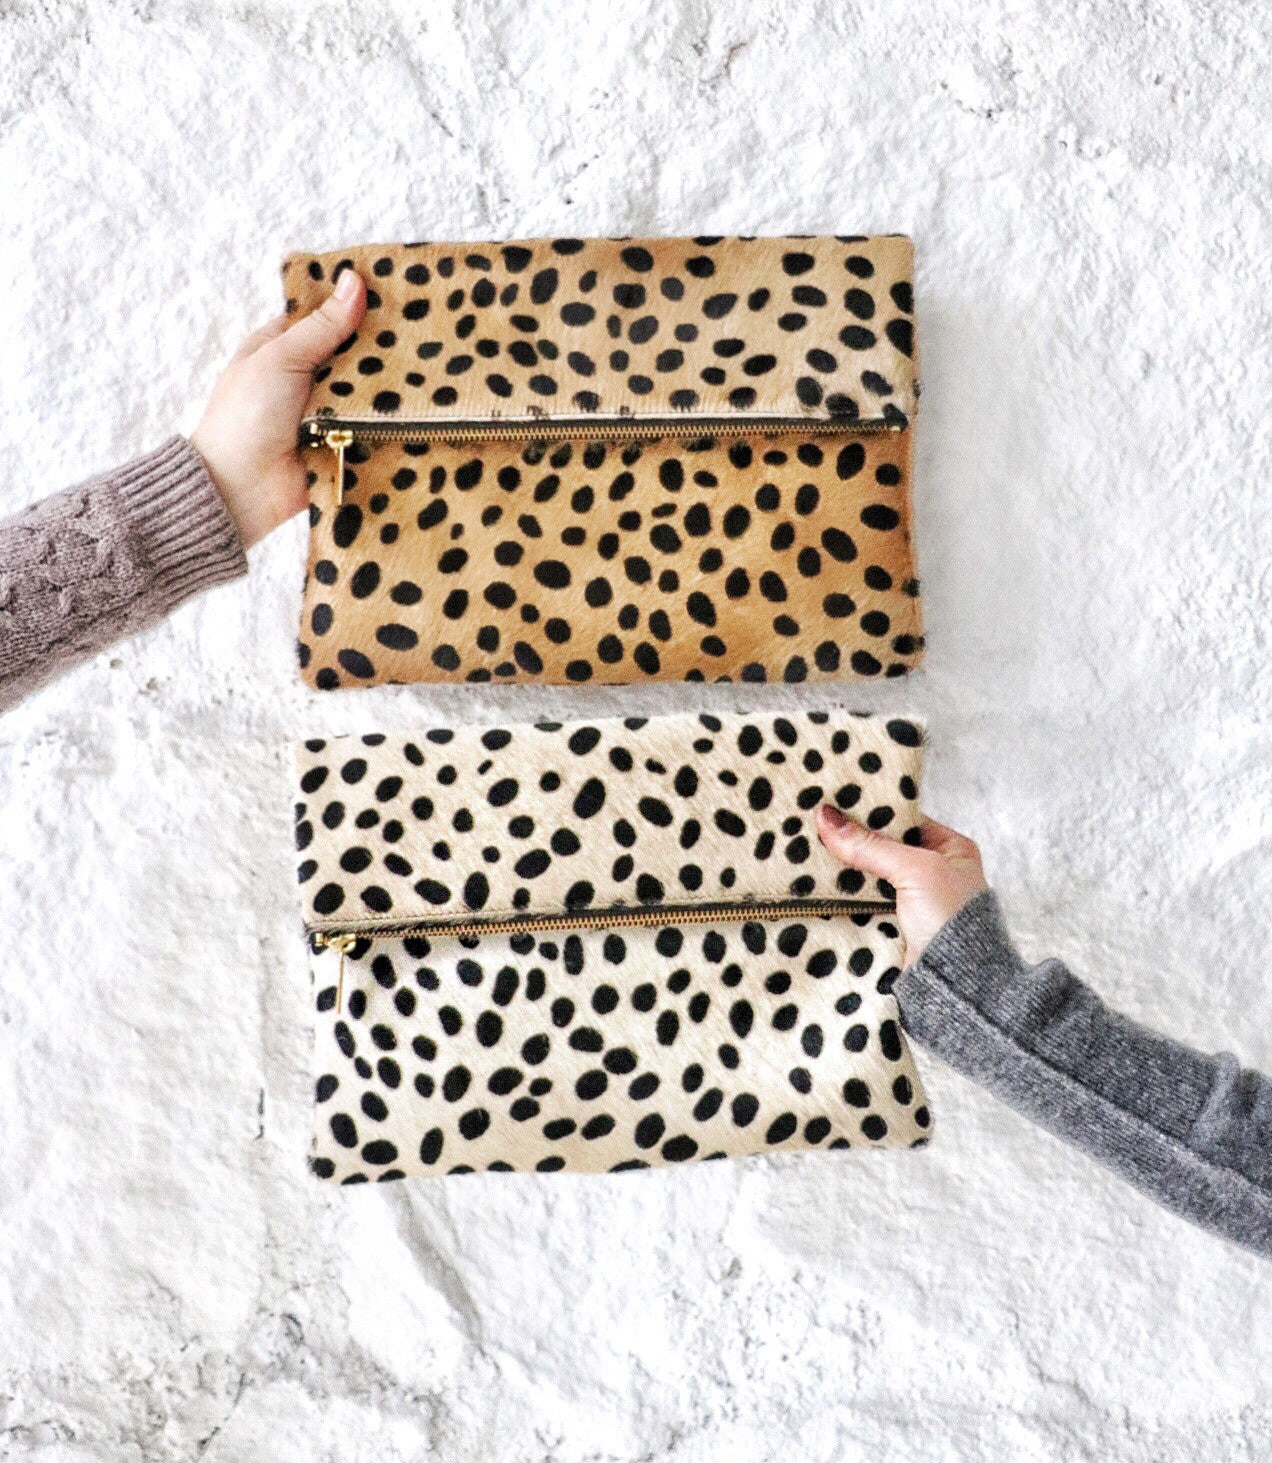 Leopard Bag, Leopard Clutch, Leopard Handbag, Leather Clutch, Gifts for her, Holiday Wishlist, Crossbody Bag, Evening Bag, Southern Designers, Southern Handbag Designer, Cowhide Clutch, Molly Jane Designs, Southern Living Handbags, Handbag Accessories